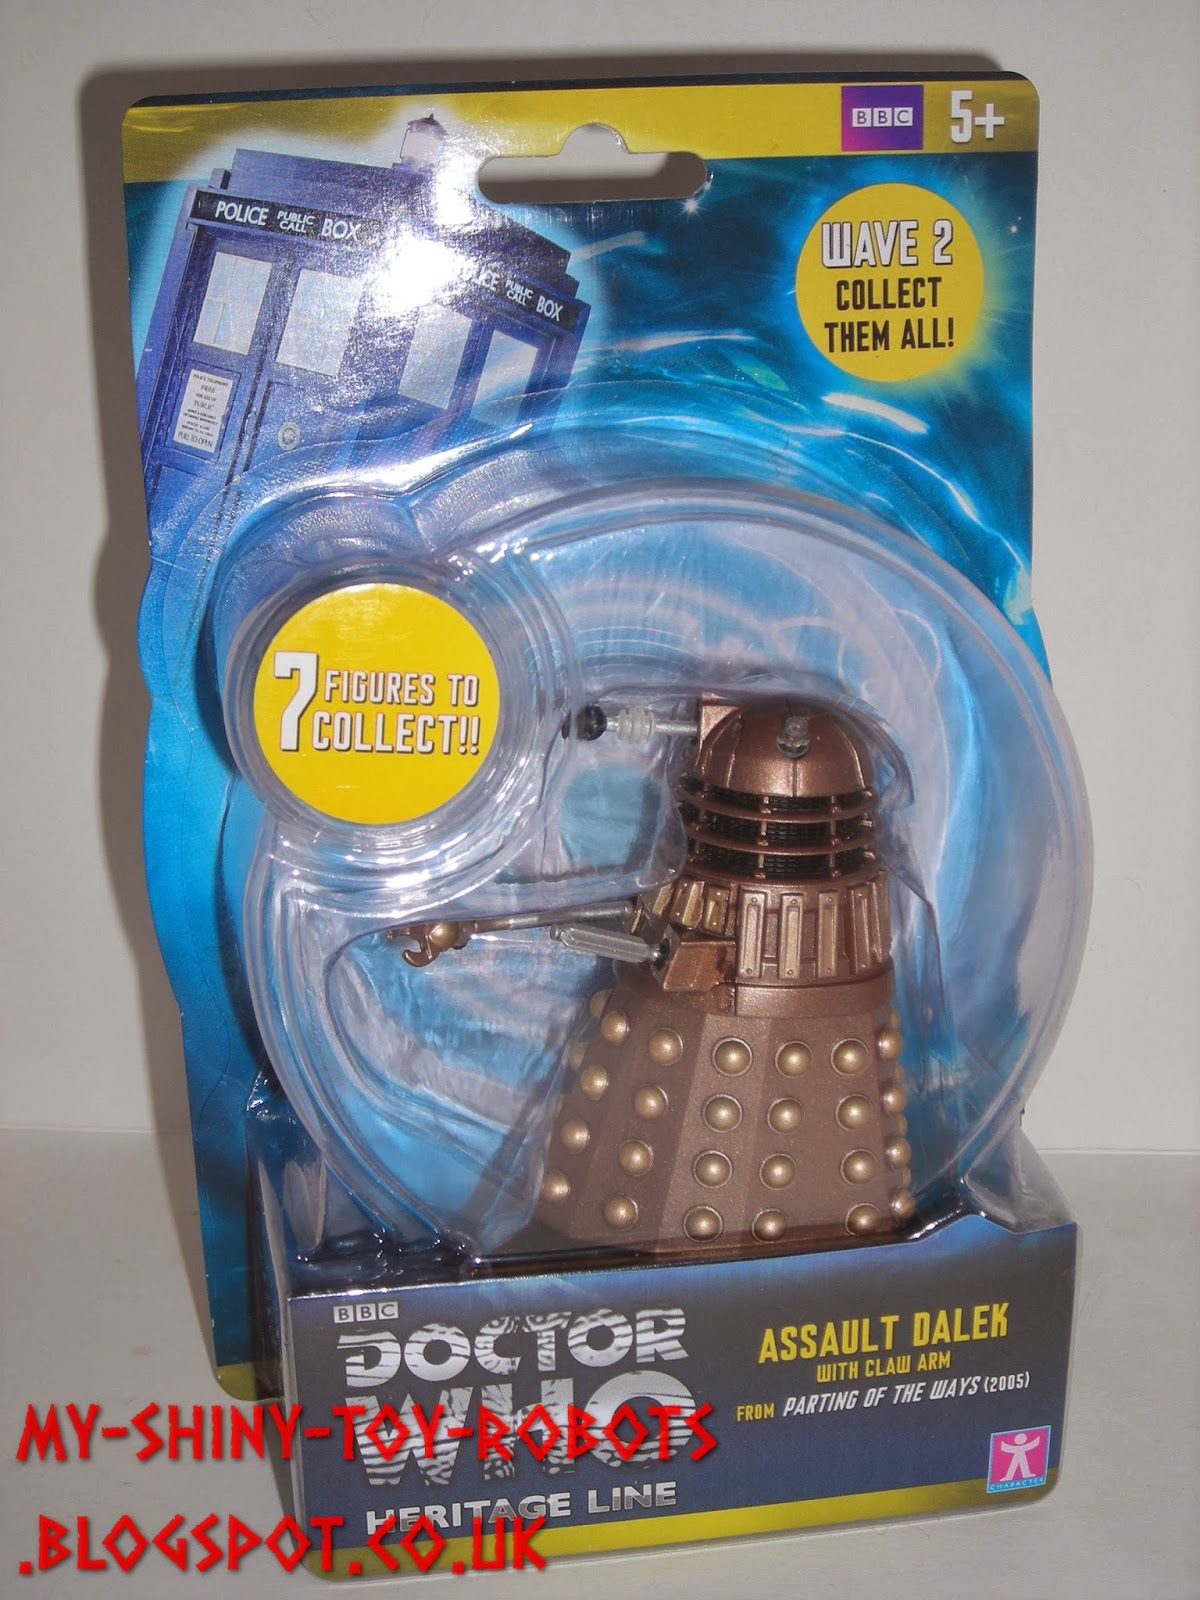 Assault Dalek in packaging